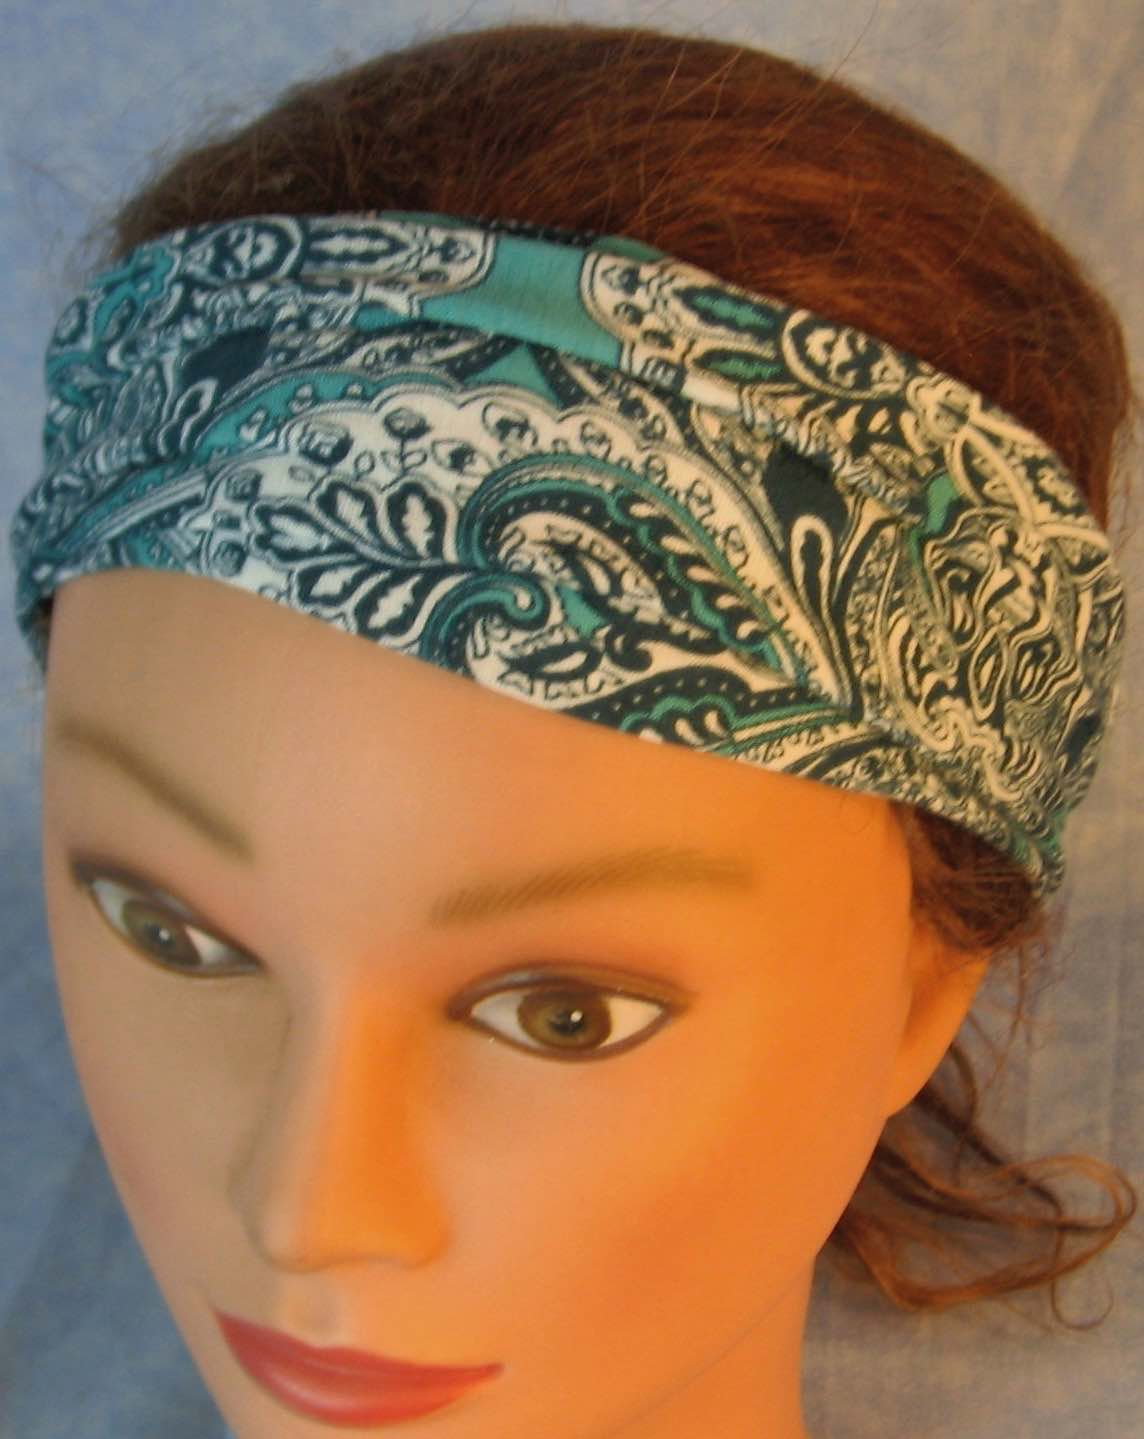 Headband-Green White Paisley Doily-folded front top